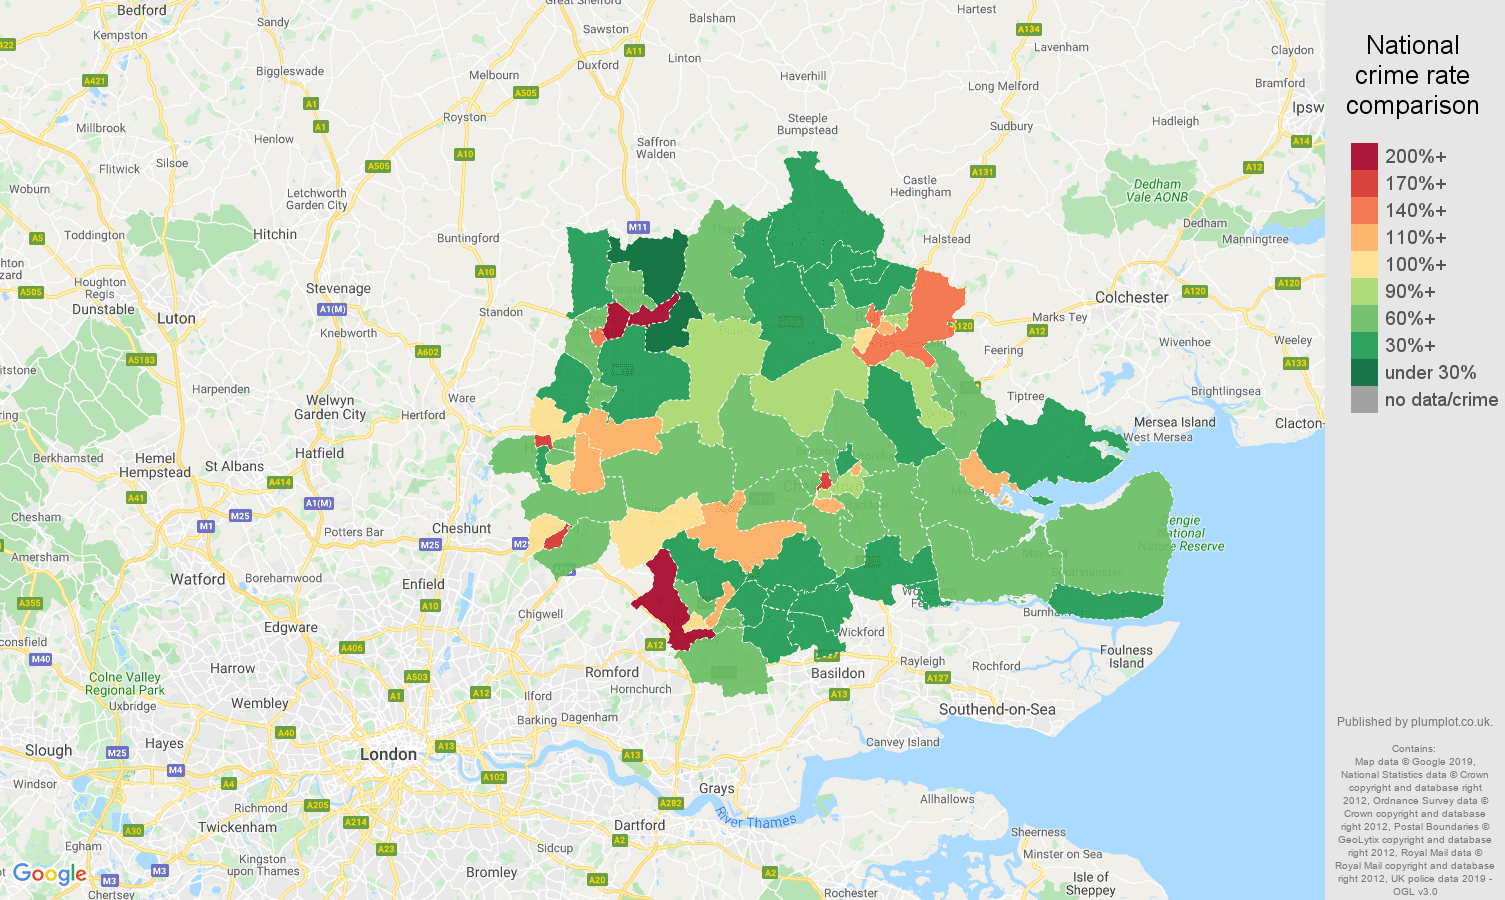 Chelmsford other theft crime rate comparison map